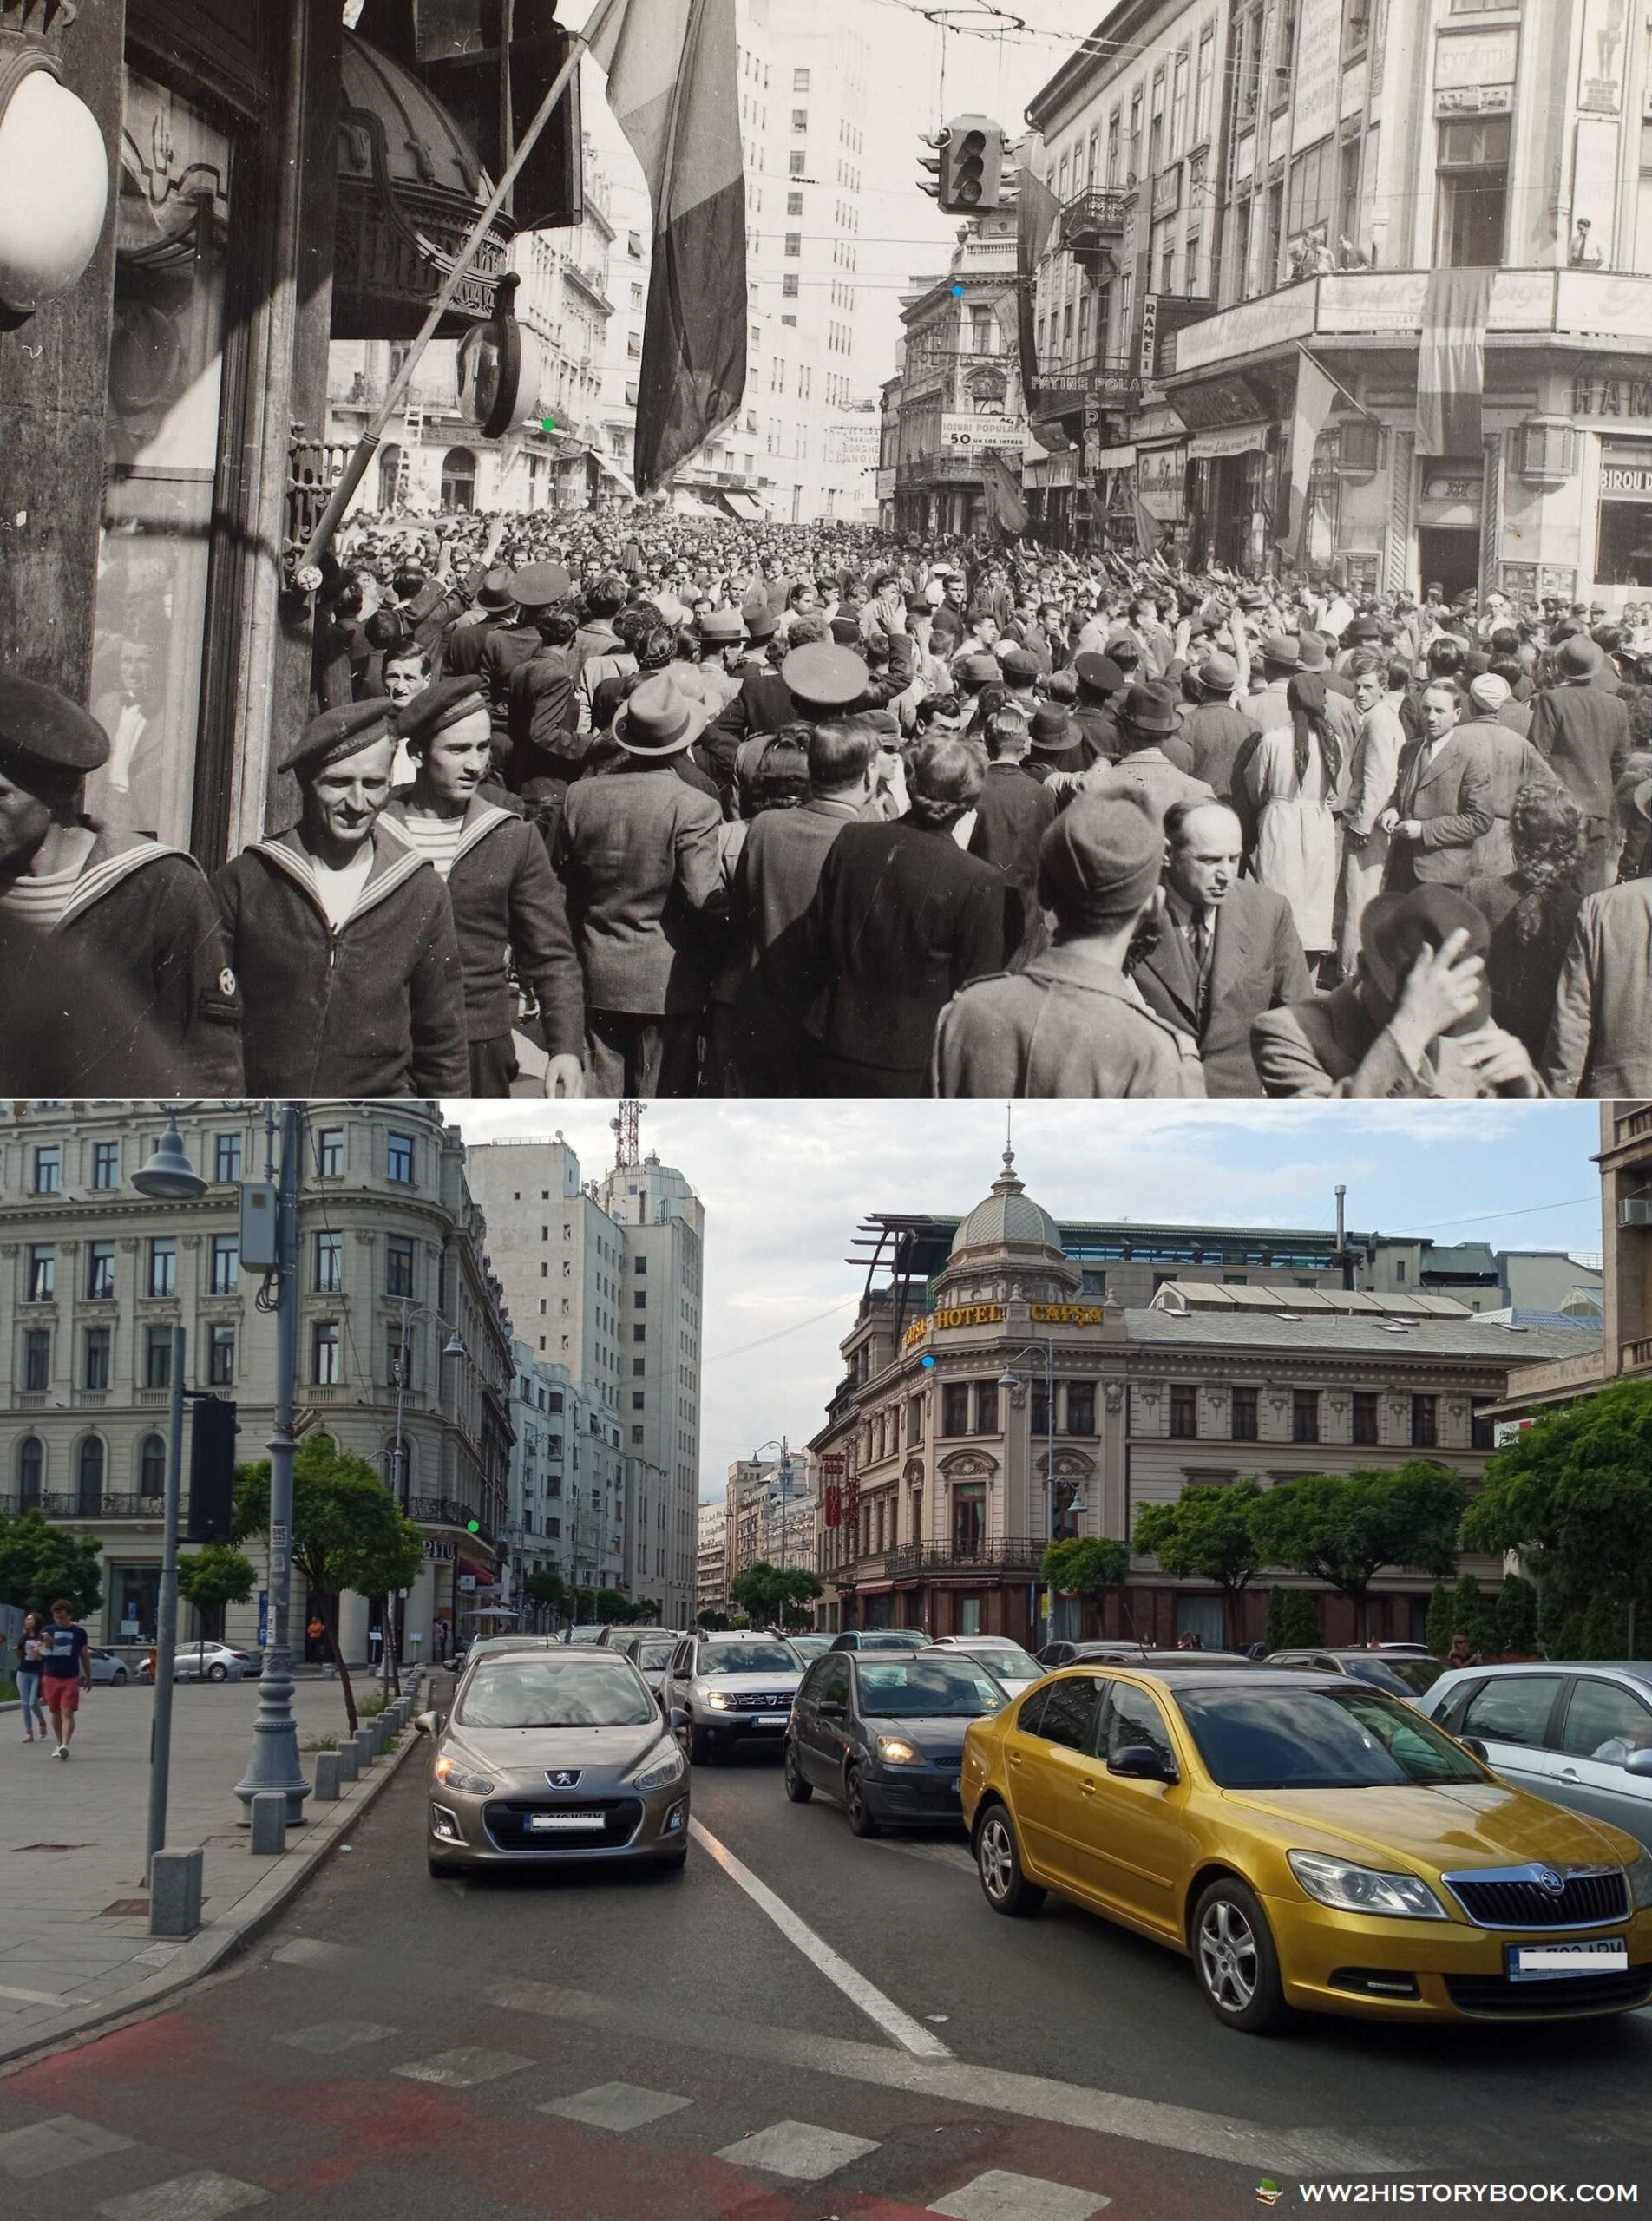 capsa capitol bucharest then and now